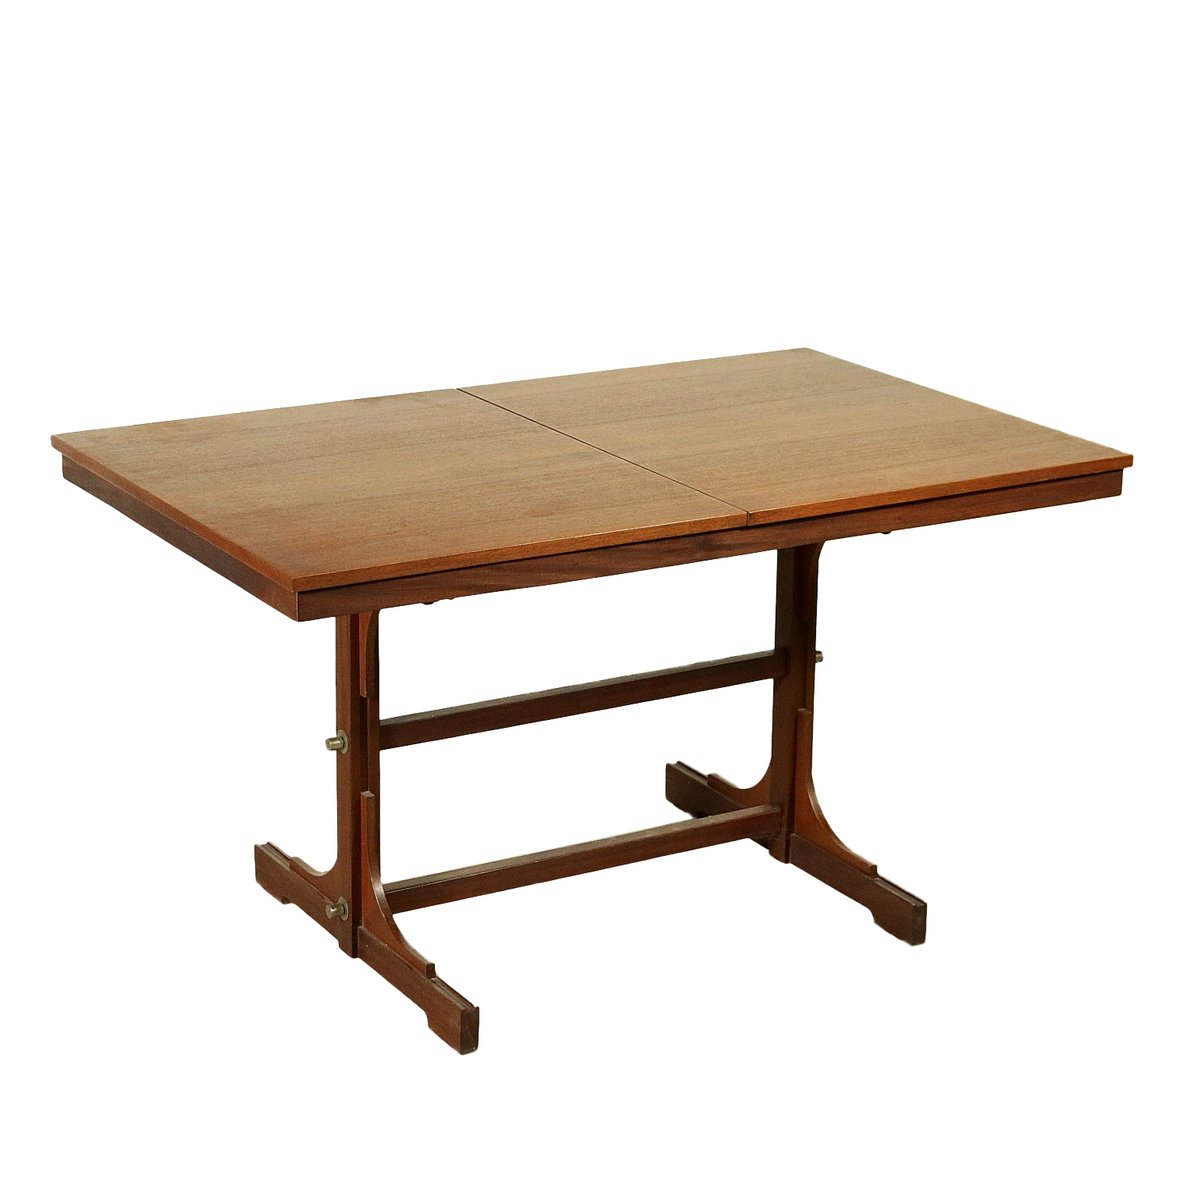 Italian teak veneer solid wood extendable dining table for Extendable dining table